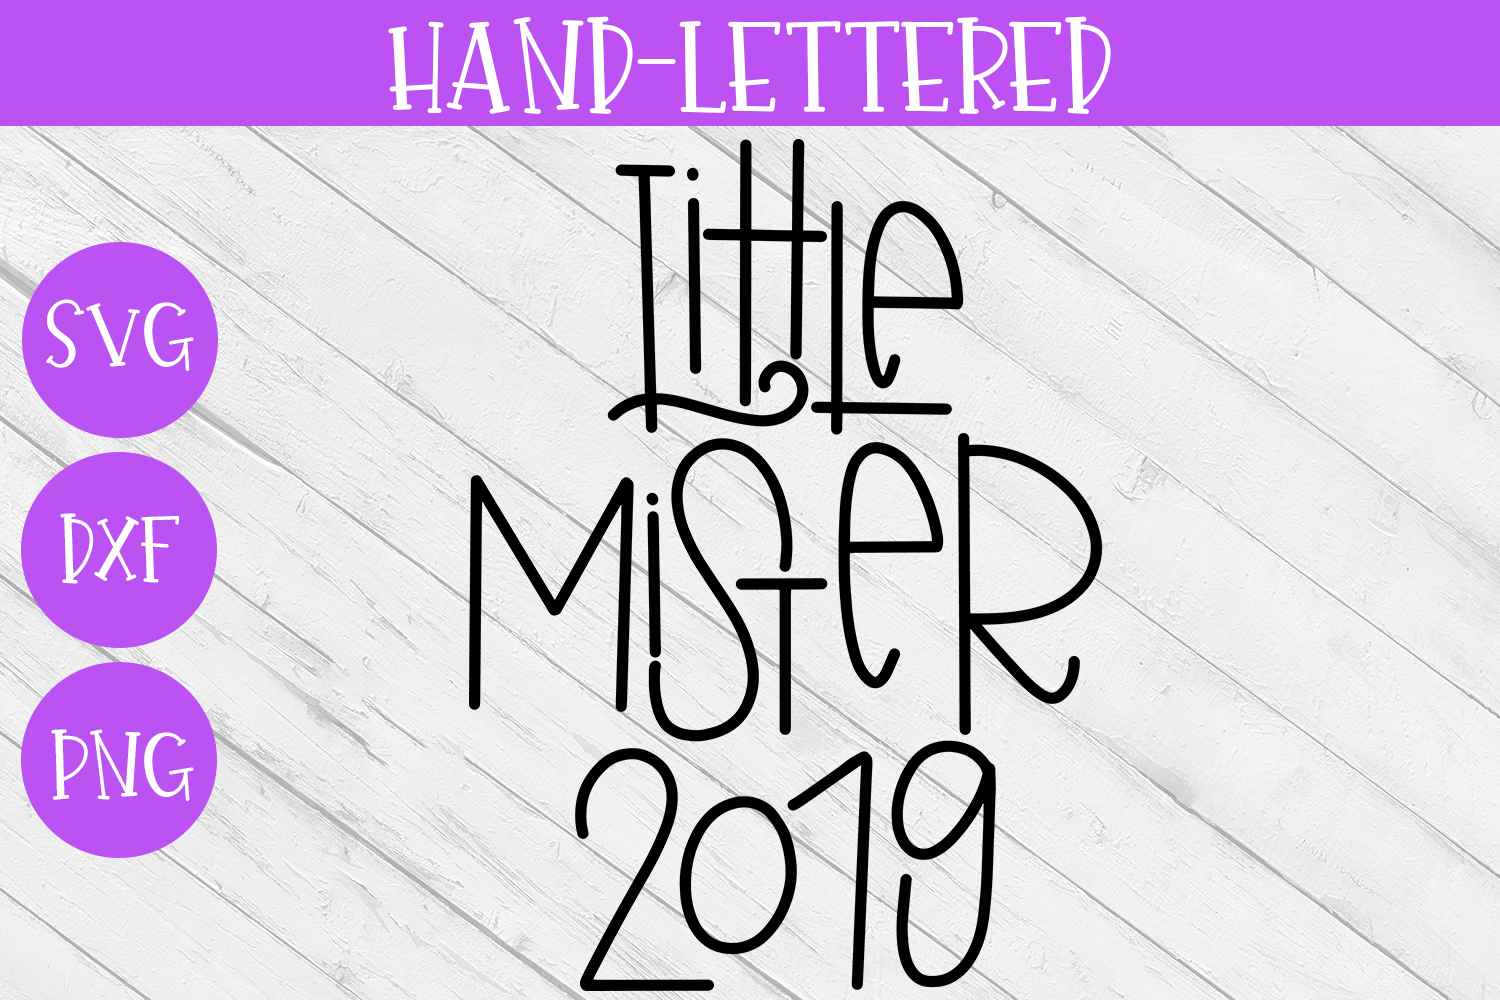 New Year SVG - Little Mister 2019 Hand-Lettered Cut File example image 2